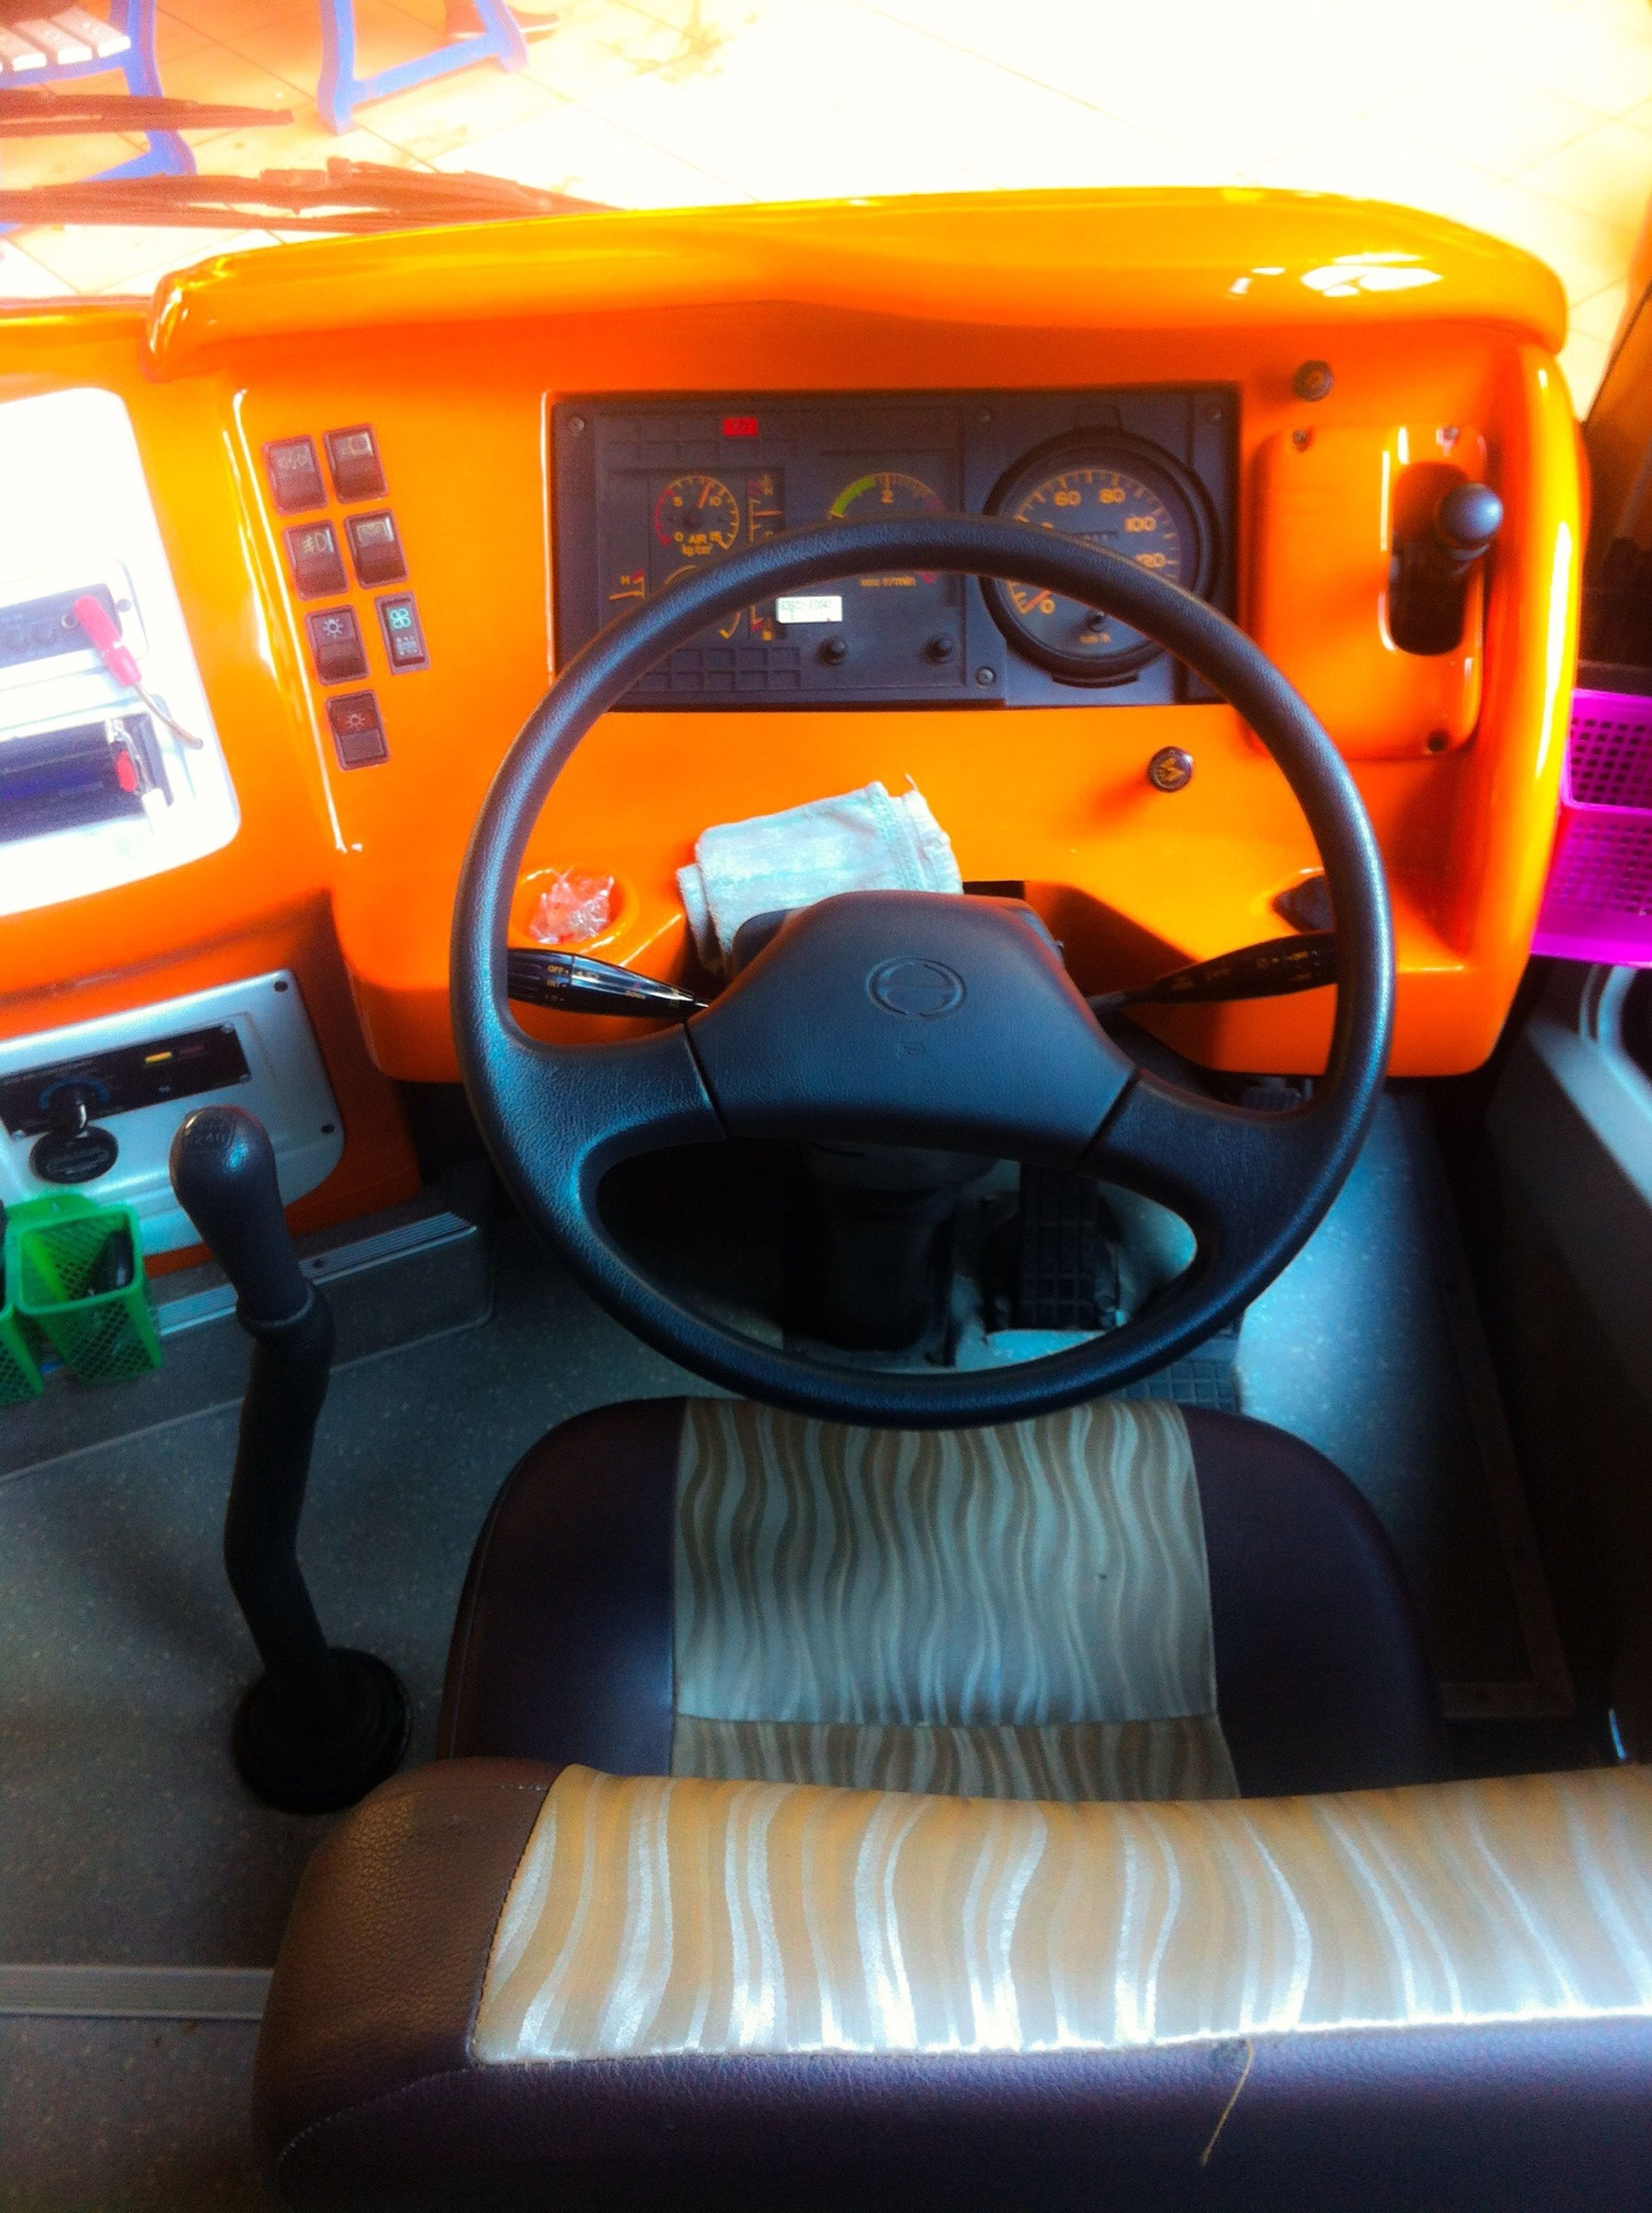 land vehicle, transportation, car, mode of transport, indoors, stationary, close-up, yellow, no people, orange color, seat, absence, still life, sunlight, day, reflection, empty, parking, chair, travel